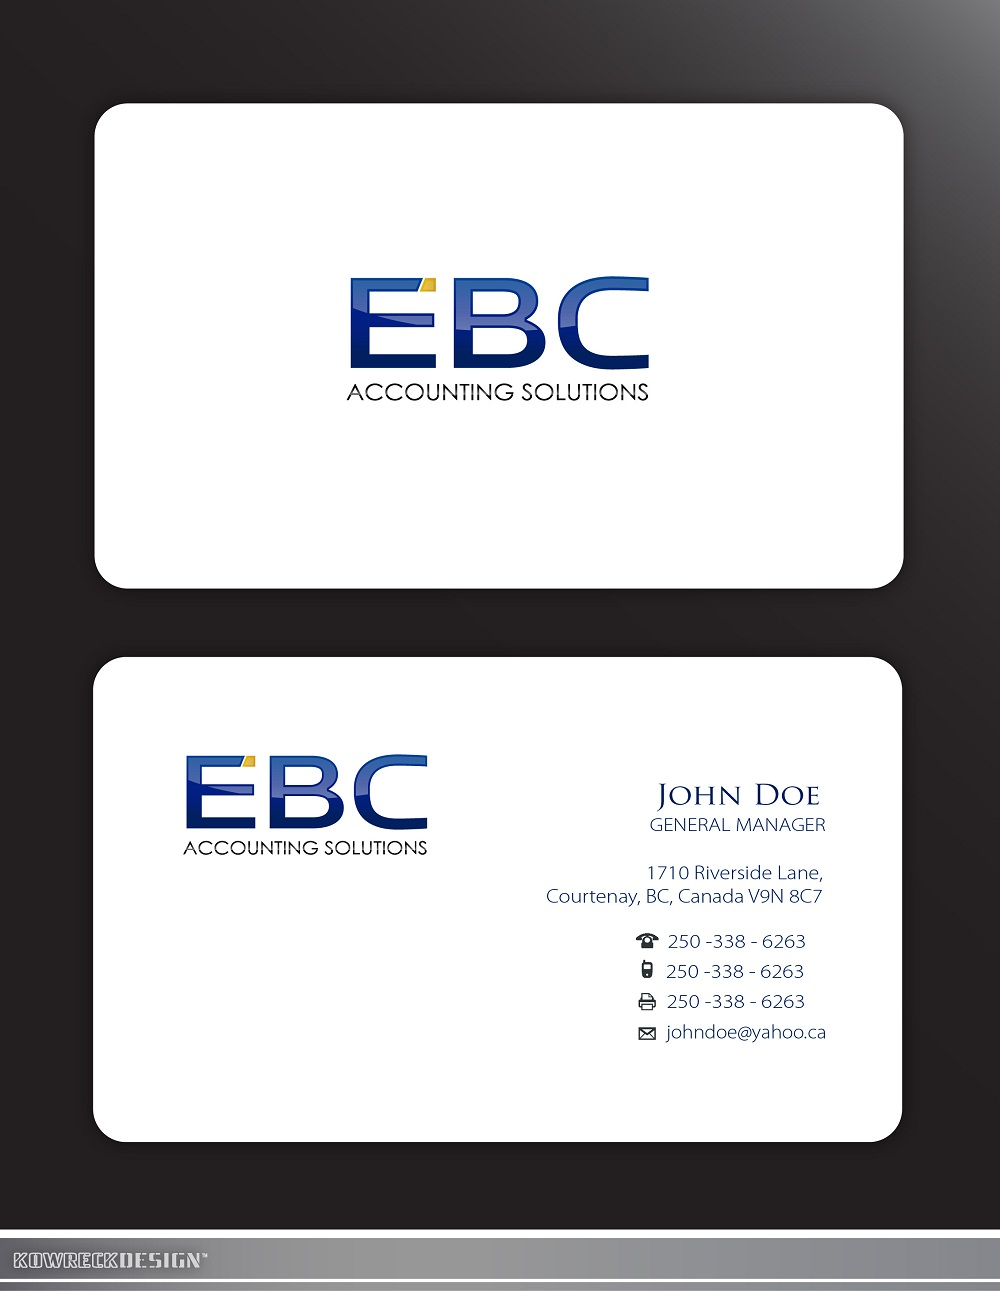 Logo Design by kowreck - Entry No. 204 in the Logo Design Contest New Logo Design for EBC Accounting Solutions.